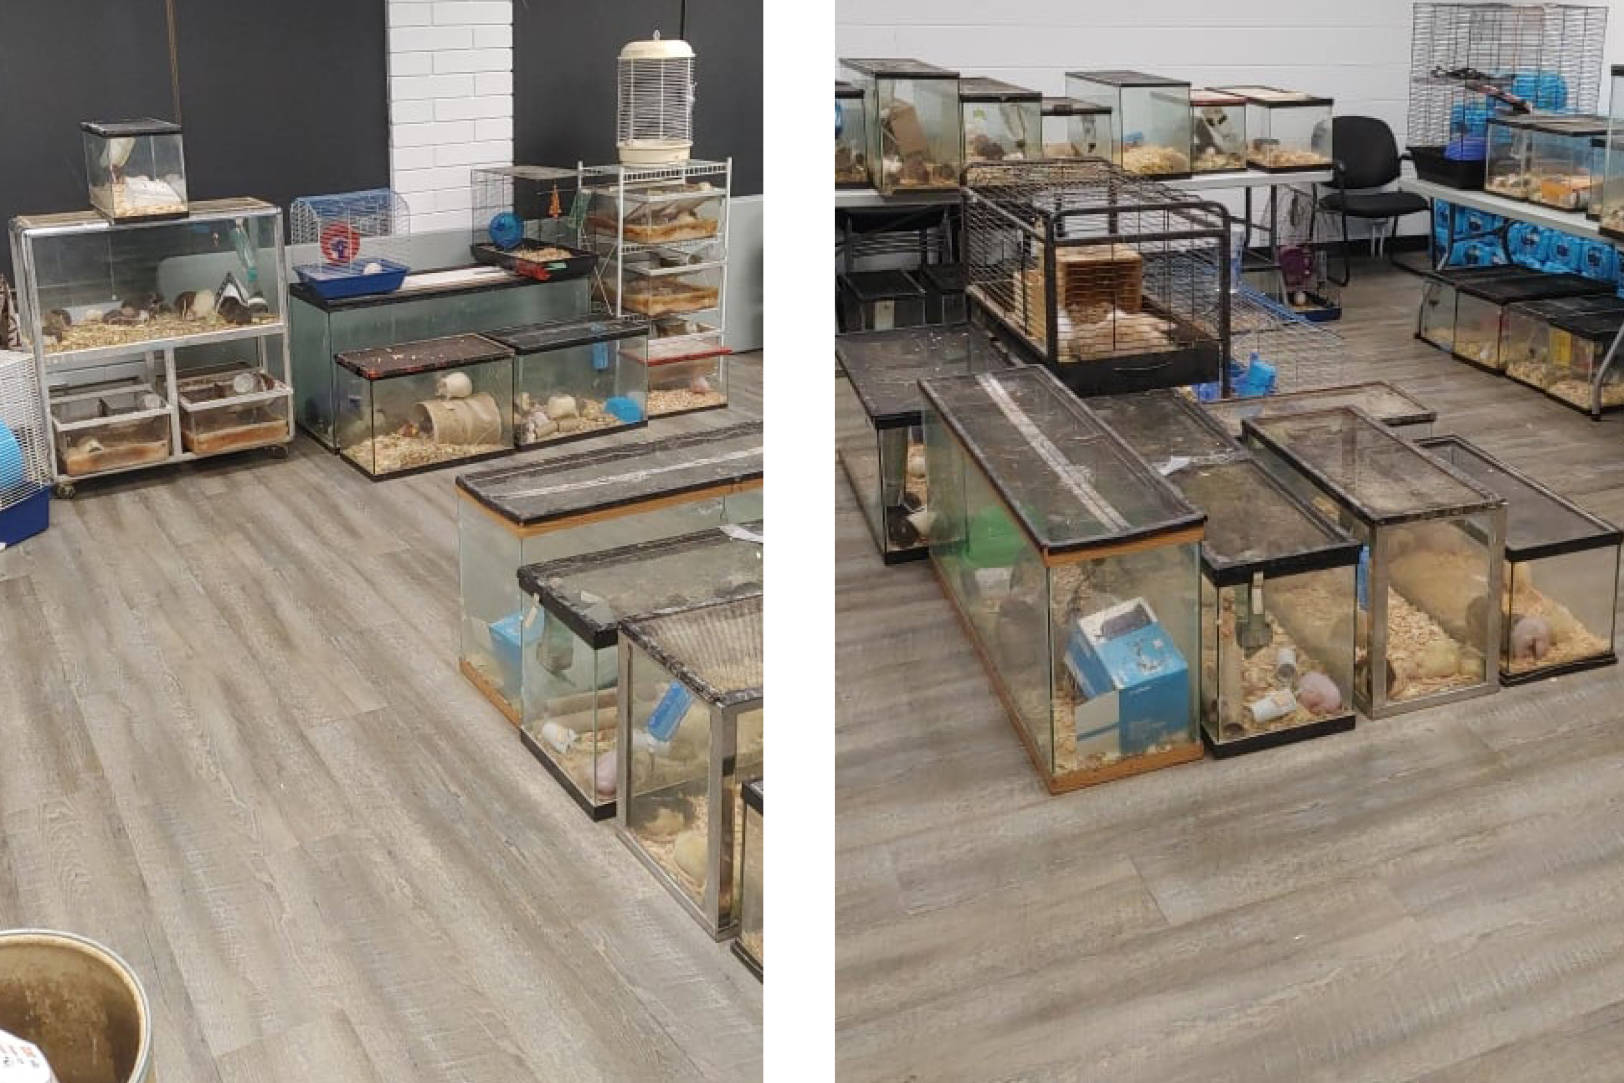 Relocated animals from the Reptile Room are safe for now in an air-conditioned room provided by Brian Goldstone and Griffin Security. (submitted photos)